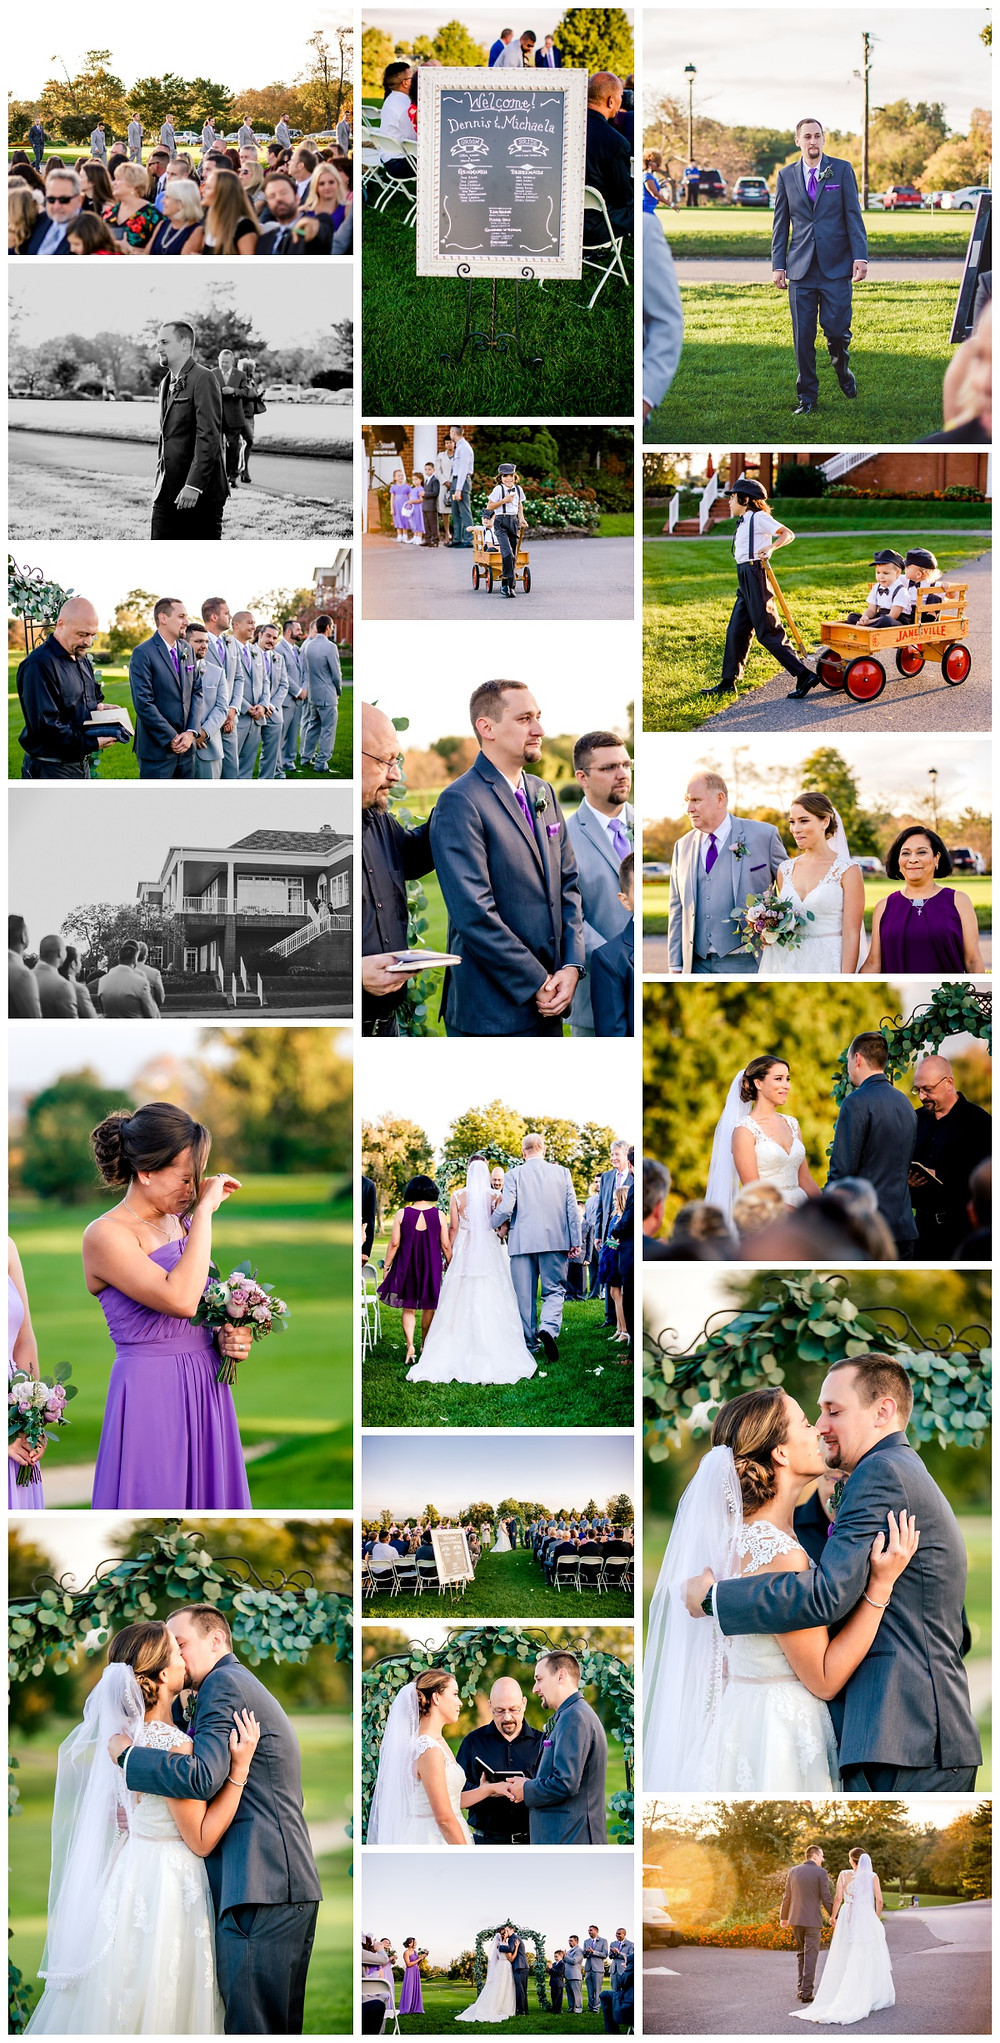 Sunset wedding ceremony at Rolling Roads Golf Course, Baltimore Maryland